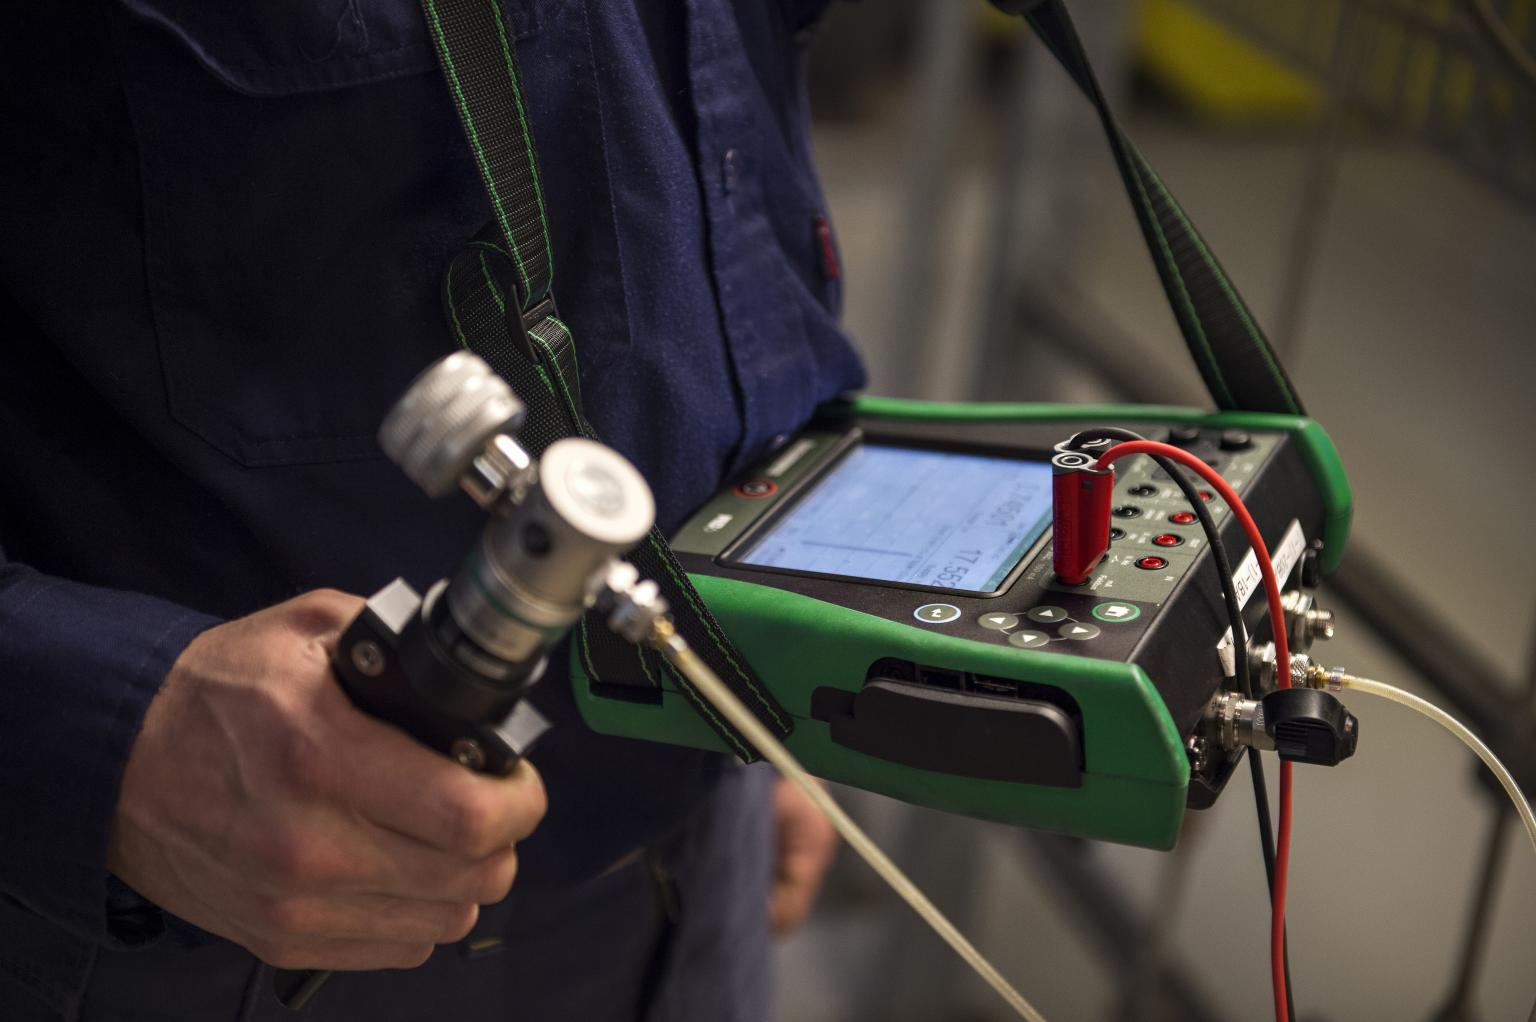 A modern calibration process is both paperless and more efficient than legacy versions